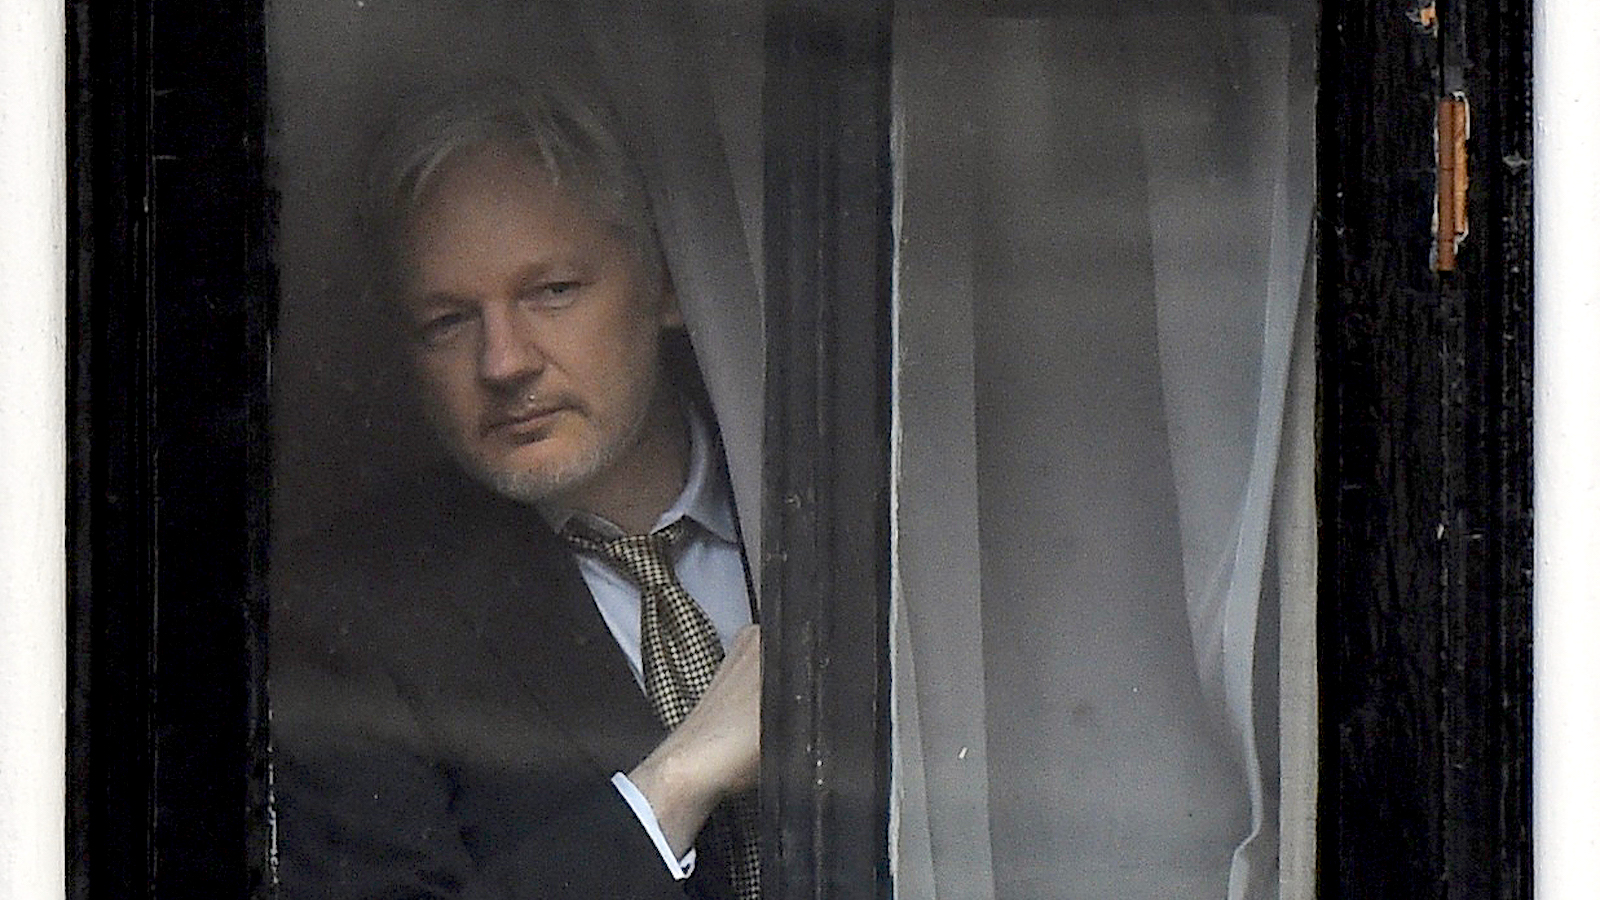 WikiLeaks founder Julian Assange peers out from behind a curtain before emerging to make a speech from the balcony of the Ecuadorian Embassy, in central London, Britain February 5, 2016. Assange should be allowed to go free from the Ecuadorian embassy in London and be awarded compensation for what amounts to a three-and-a-half-year arbitrary detention, a U.N. panel ruled on Friday. REUTERS/Toby Melville - RTX25ML6